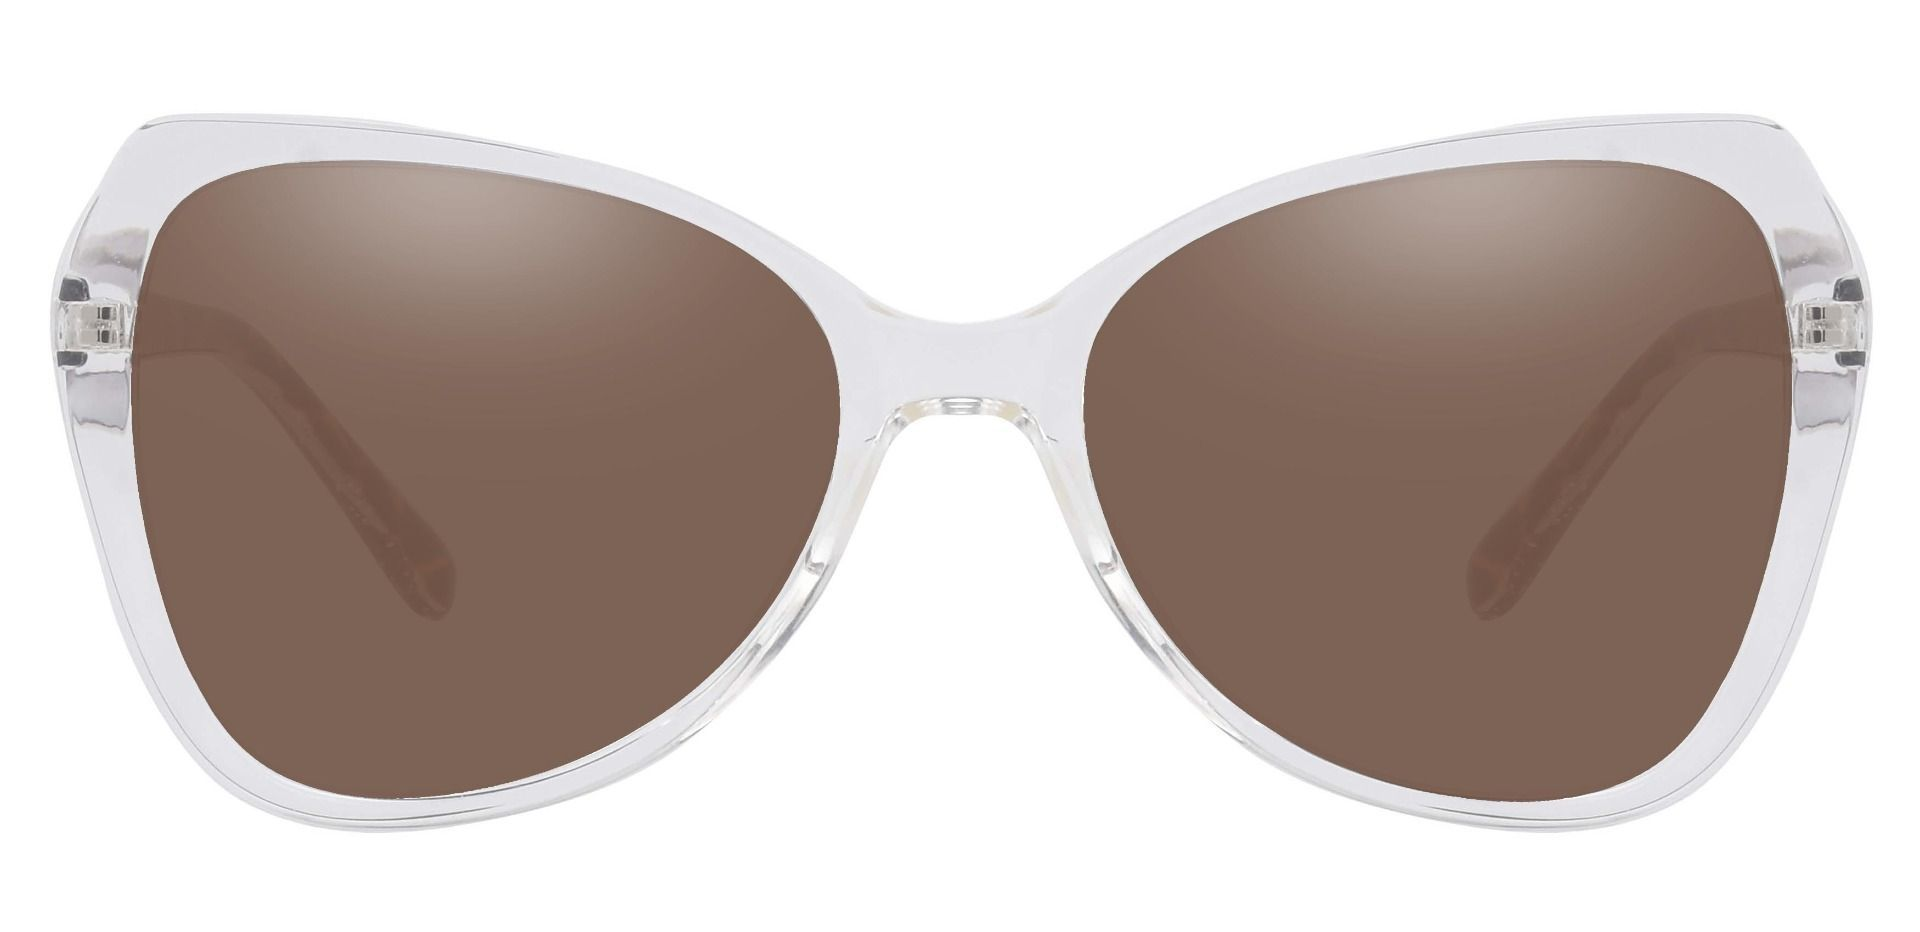 Kayla Geometric Reading Sunglasses - Clear Frame With Brown Lenses